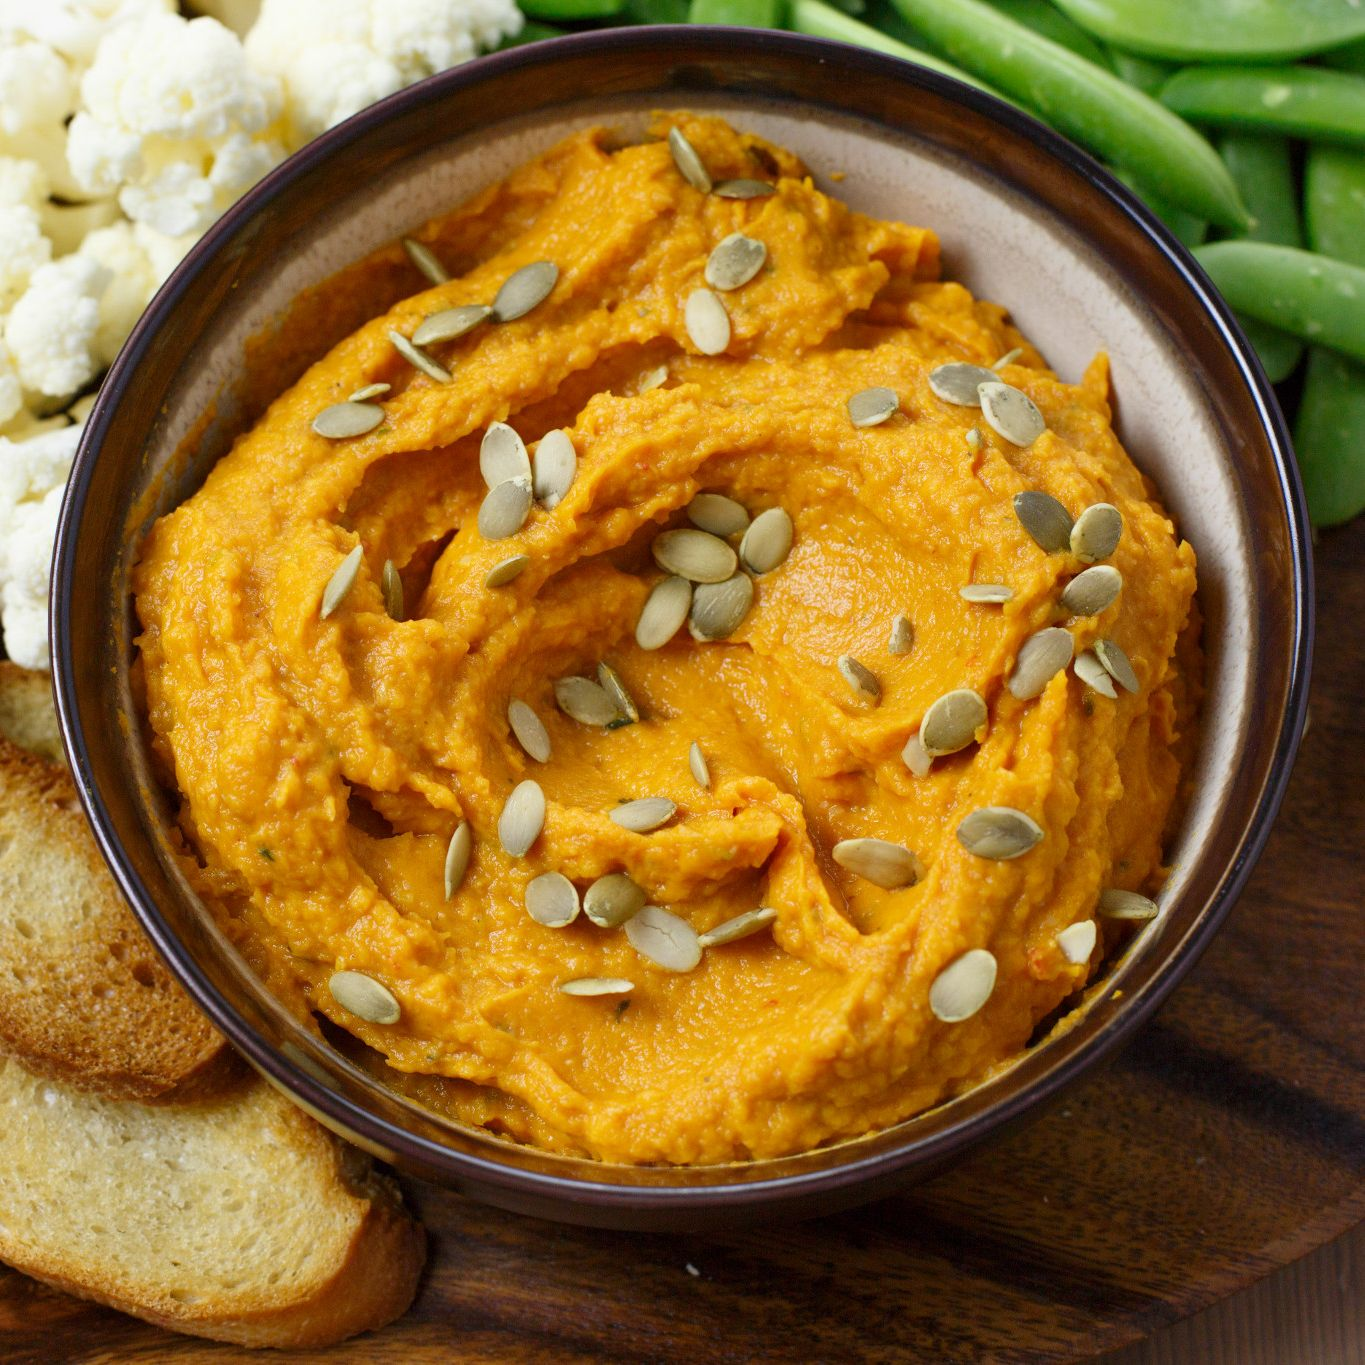 Chili Pumpkin Hummus